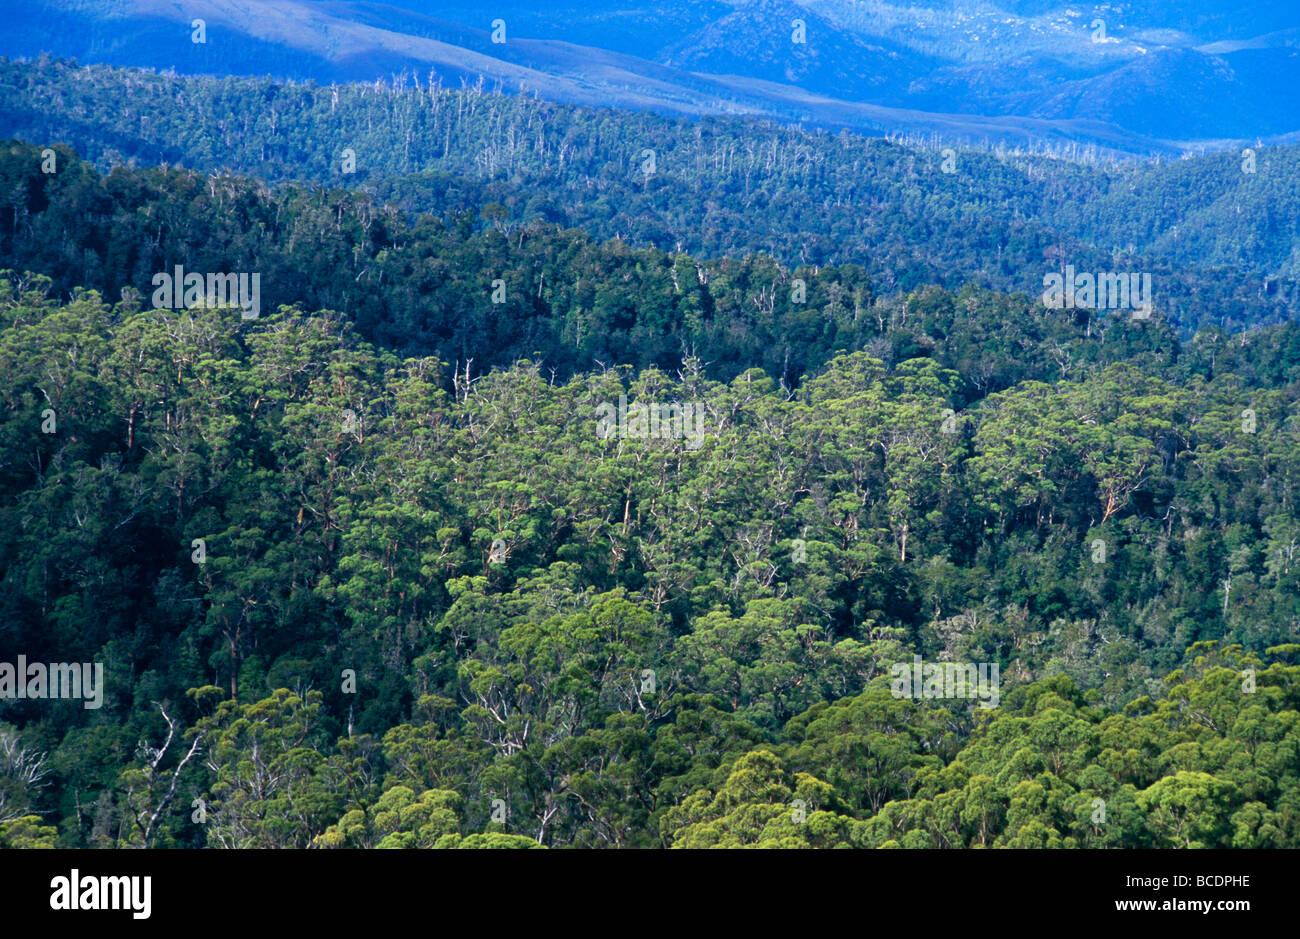 Dappled sunlight falls over a vast Wet Eucalypt Forest. - Stock Image